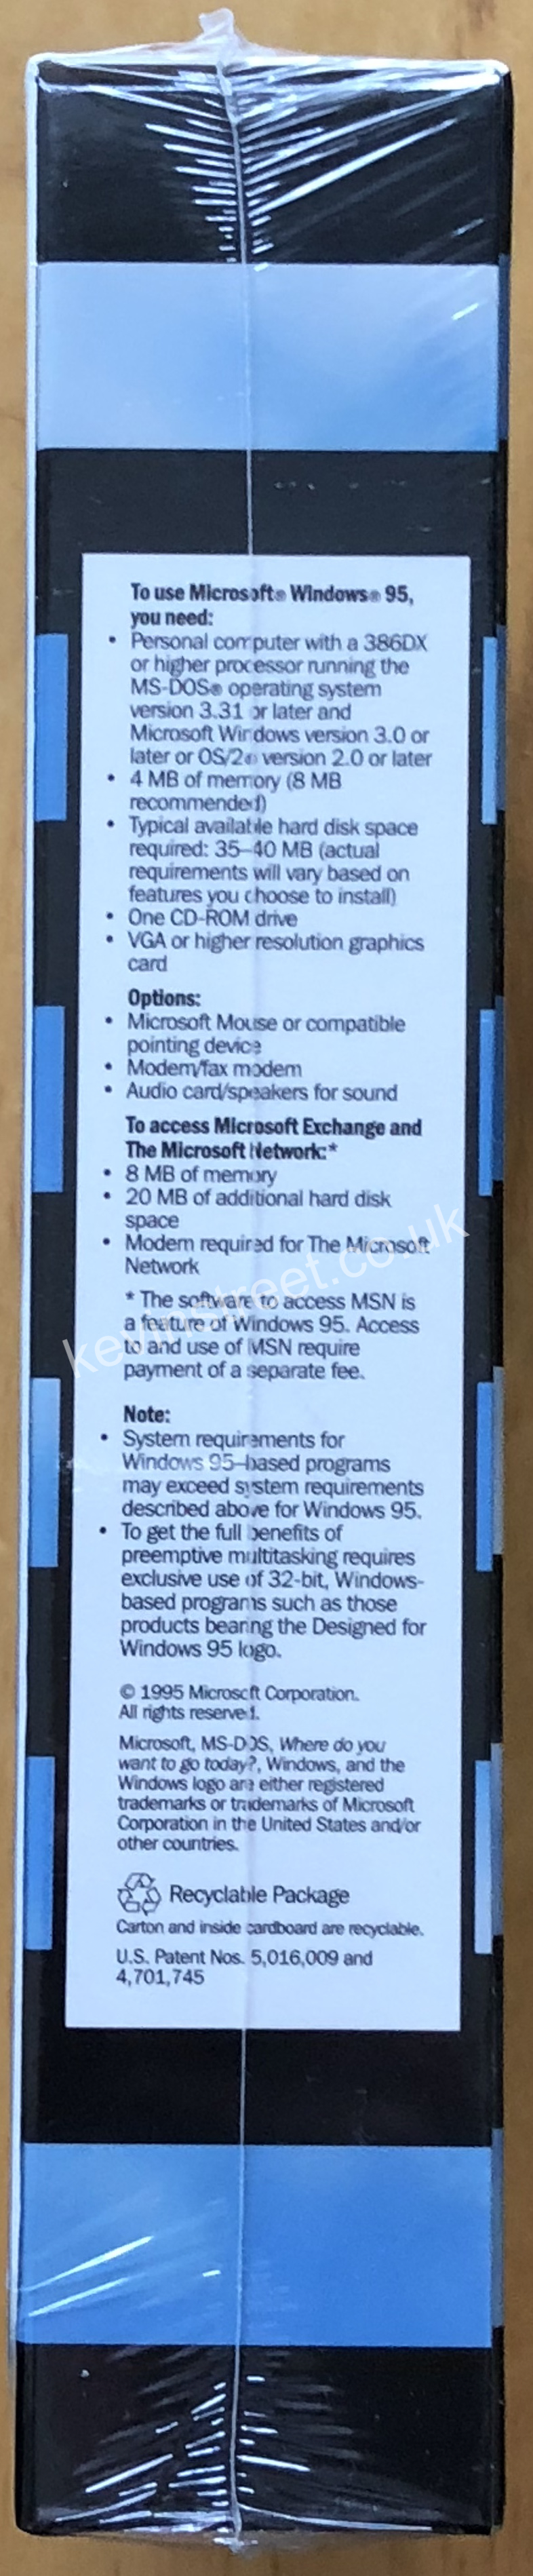 On August 24th, 1995 Microsoft hosted a Windows 95 launch event at their campus in Redmond, Washington. At this event journalists and other attendees